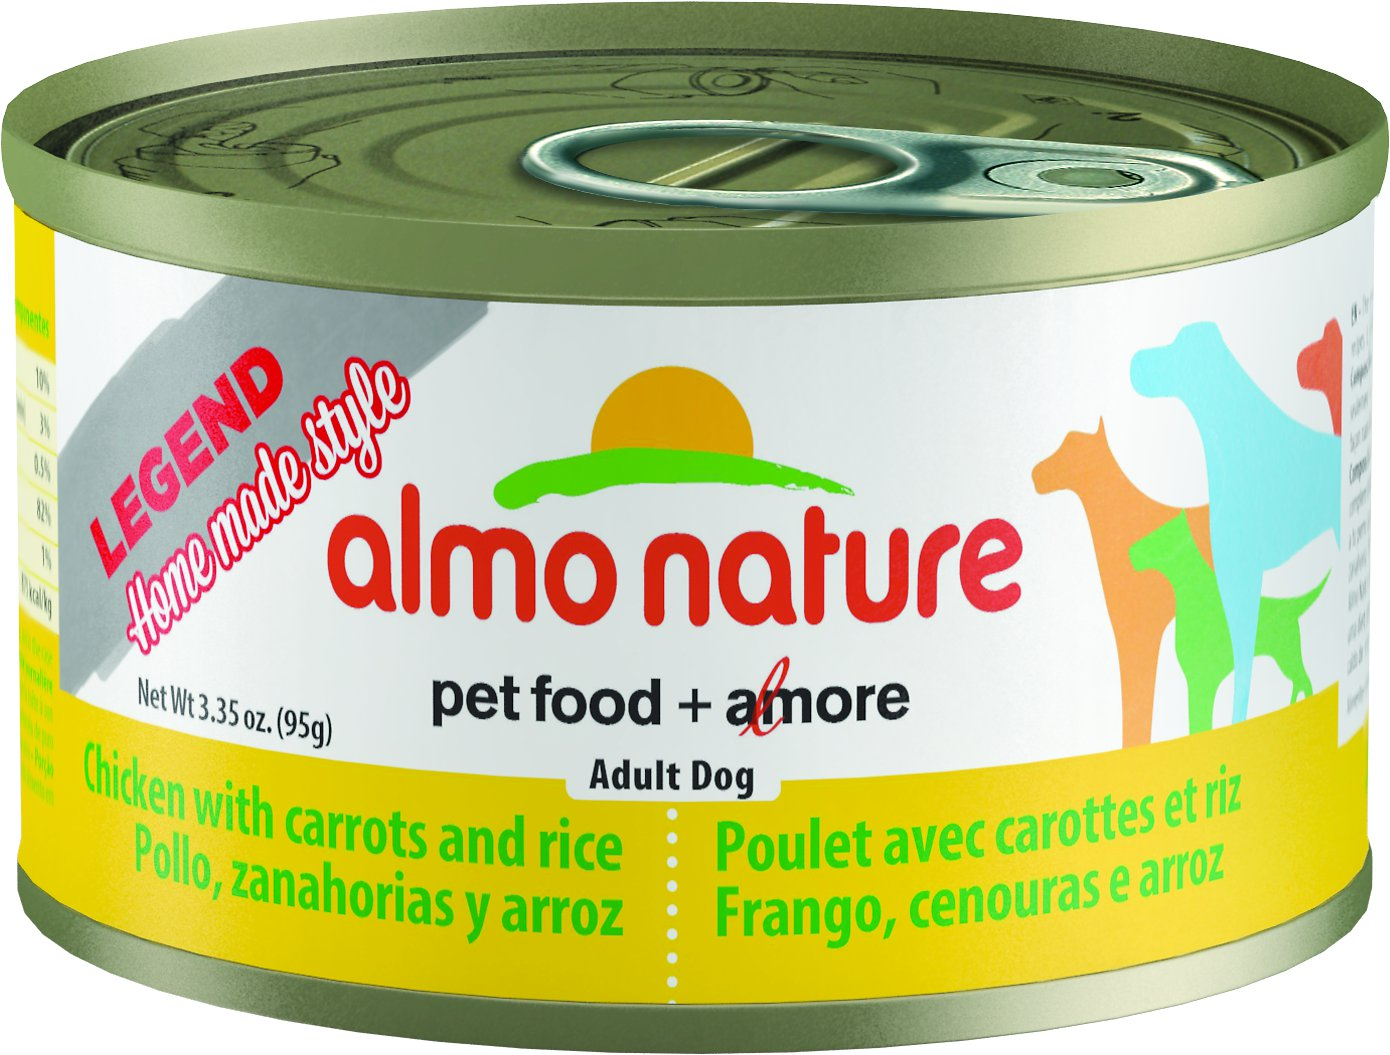 Almo Nature Legend Homemade Style Chicken with Carrots Adult Grain-Free Canned Dog Food